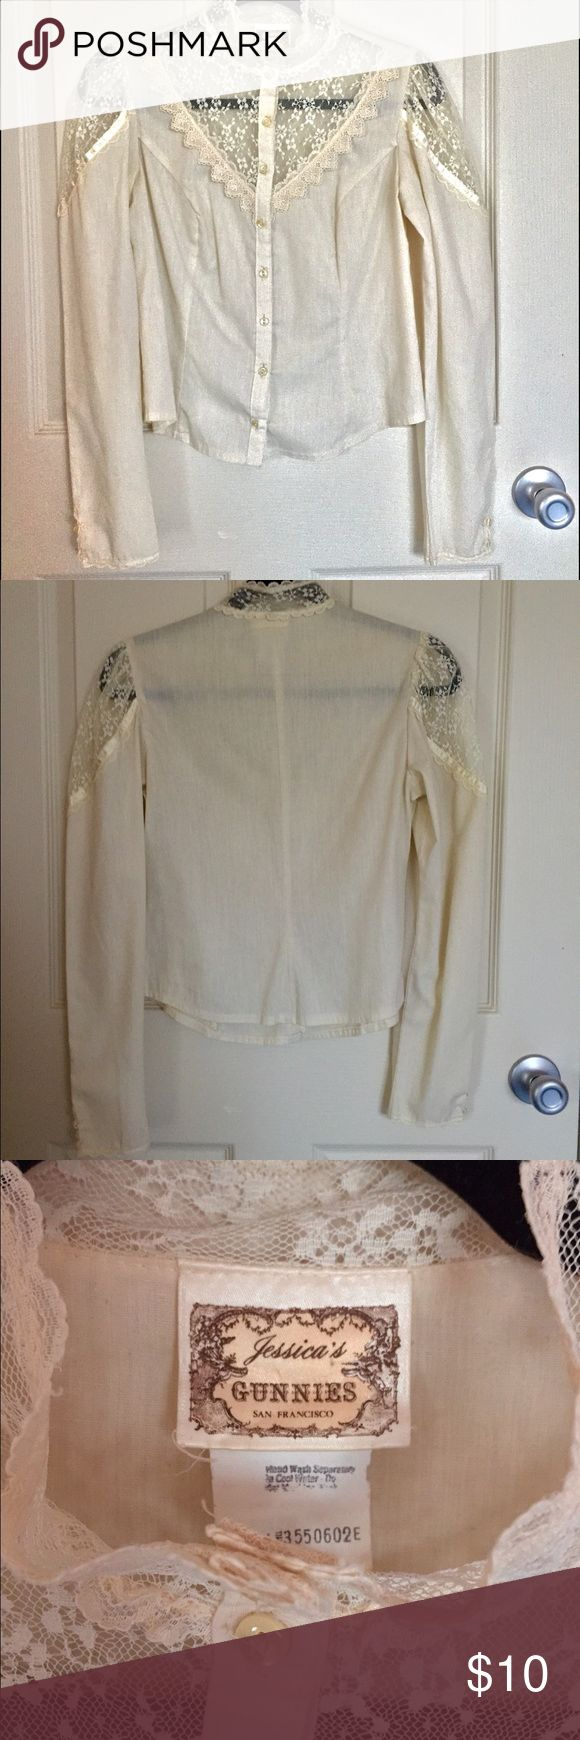 Vintage Gunne Sax top Genuine Gunne Sax top. Perfect for layering with a pinafore or dress. In excellent vintage condition. Mostly sheer but can be fixed with a nude cami underneath. Selling because it no longer fits my personal style. Jessica McClintock Tops Blouses